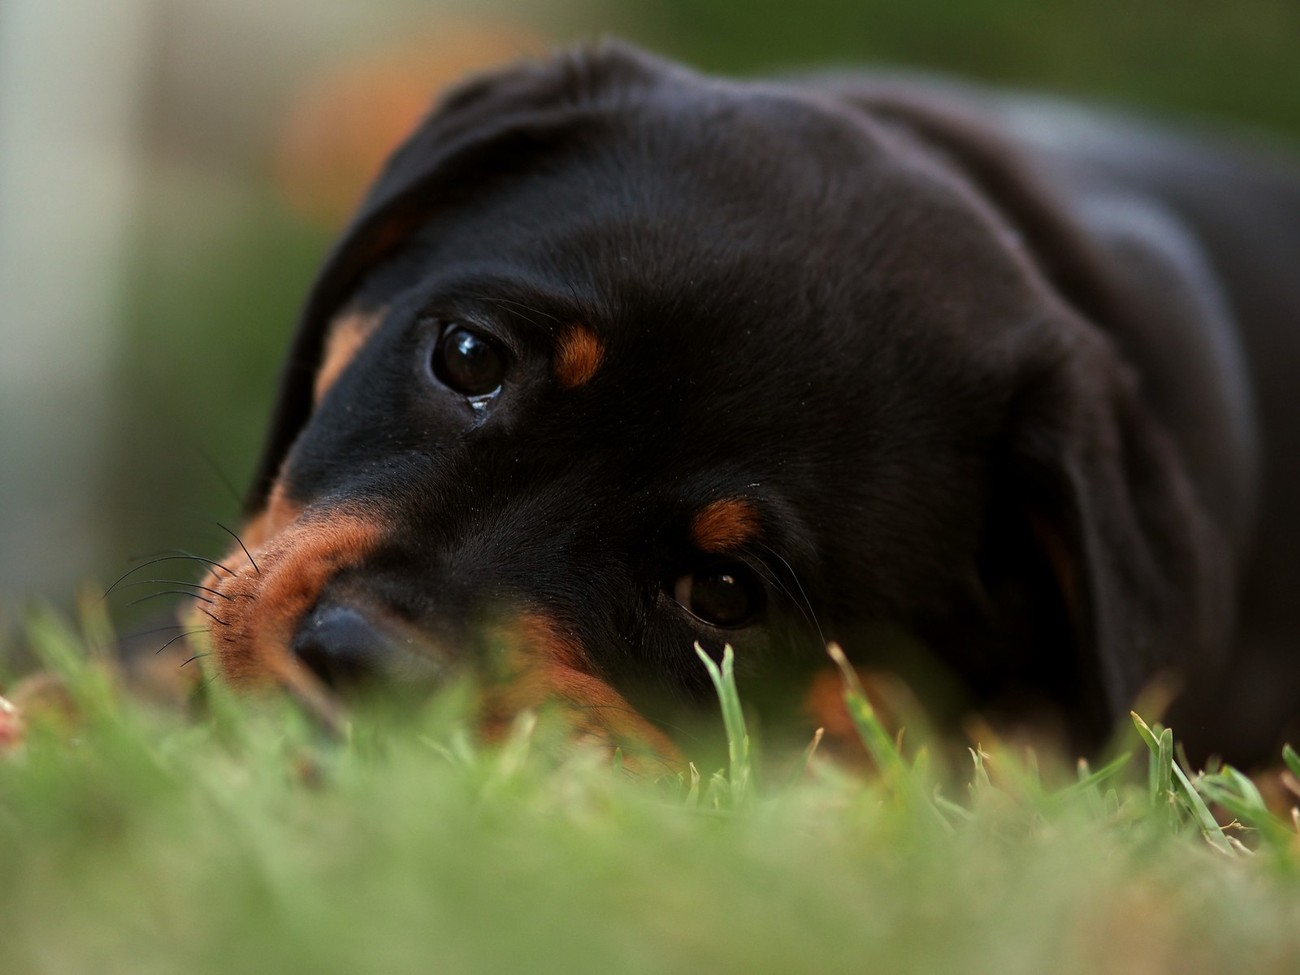 My Rottweiler back when she was a puppy loved playing with the camera and was always a great subject for practicing portrait photography, was laying on the grass with her when I took this image and she kept crawling forwards and tilting her head .